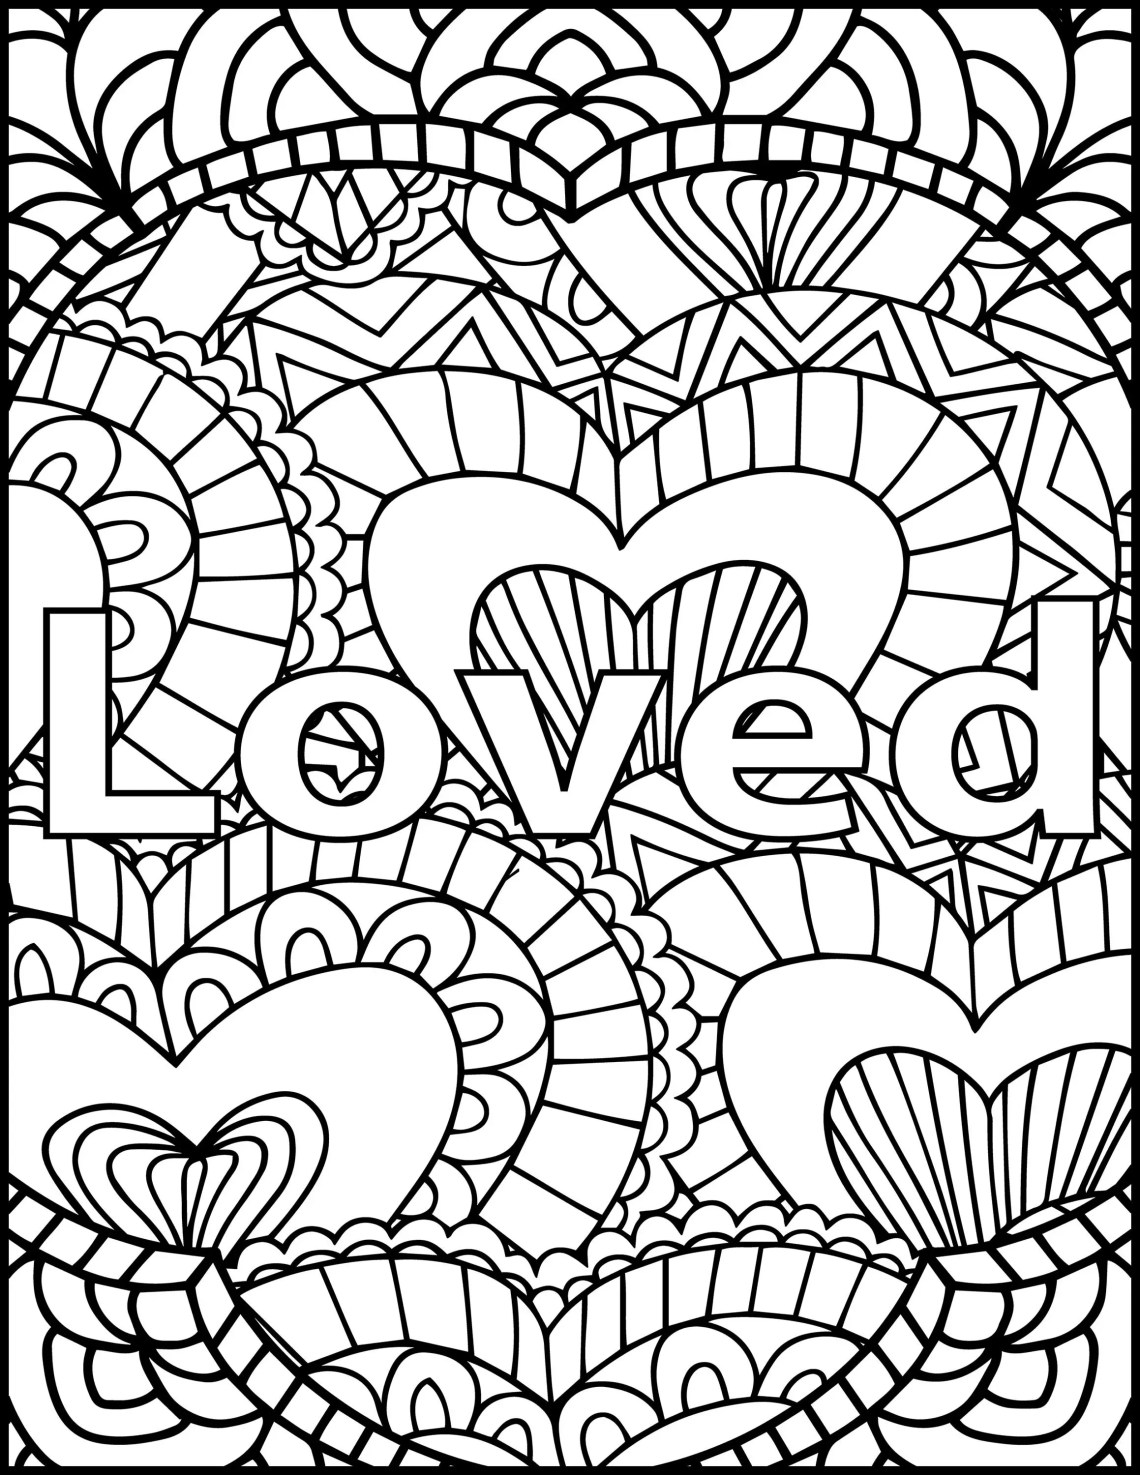 I Am Loved Adult Coloring Page Inspiring Message Coloring | free printable coloring pages for adults